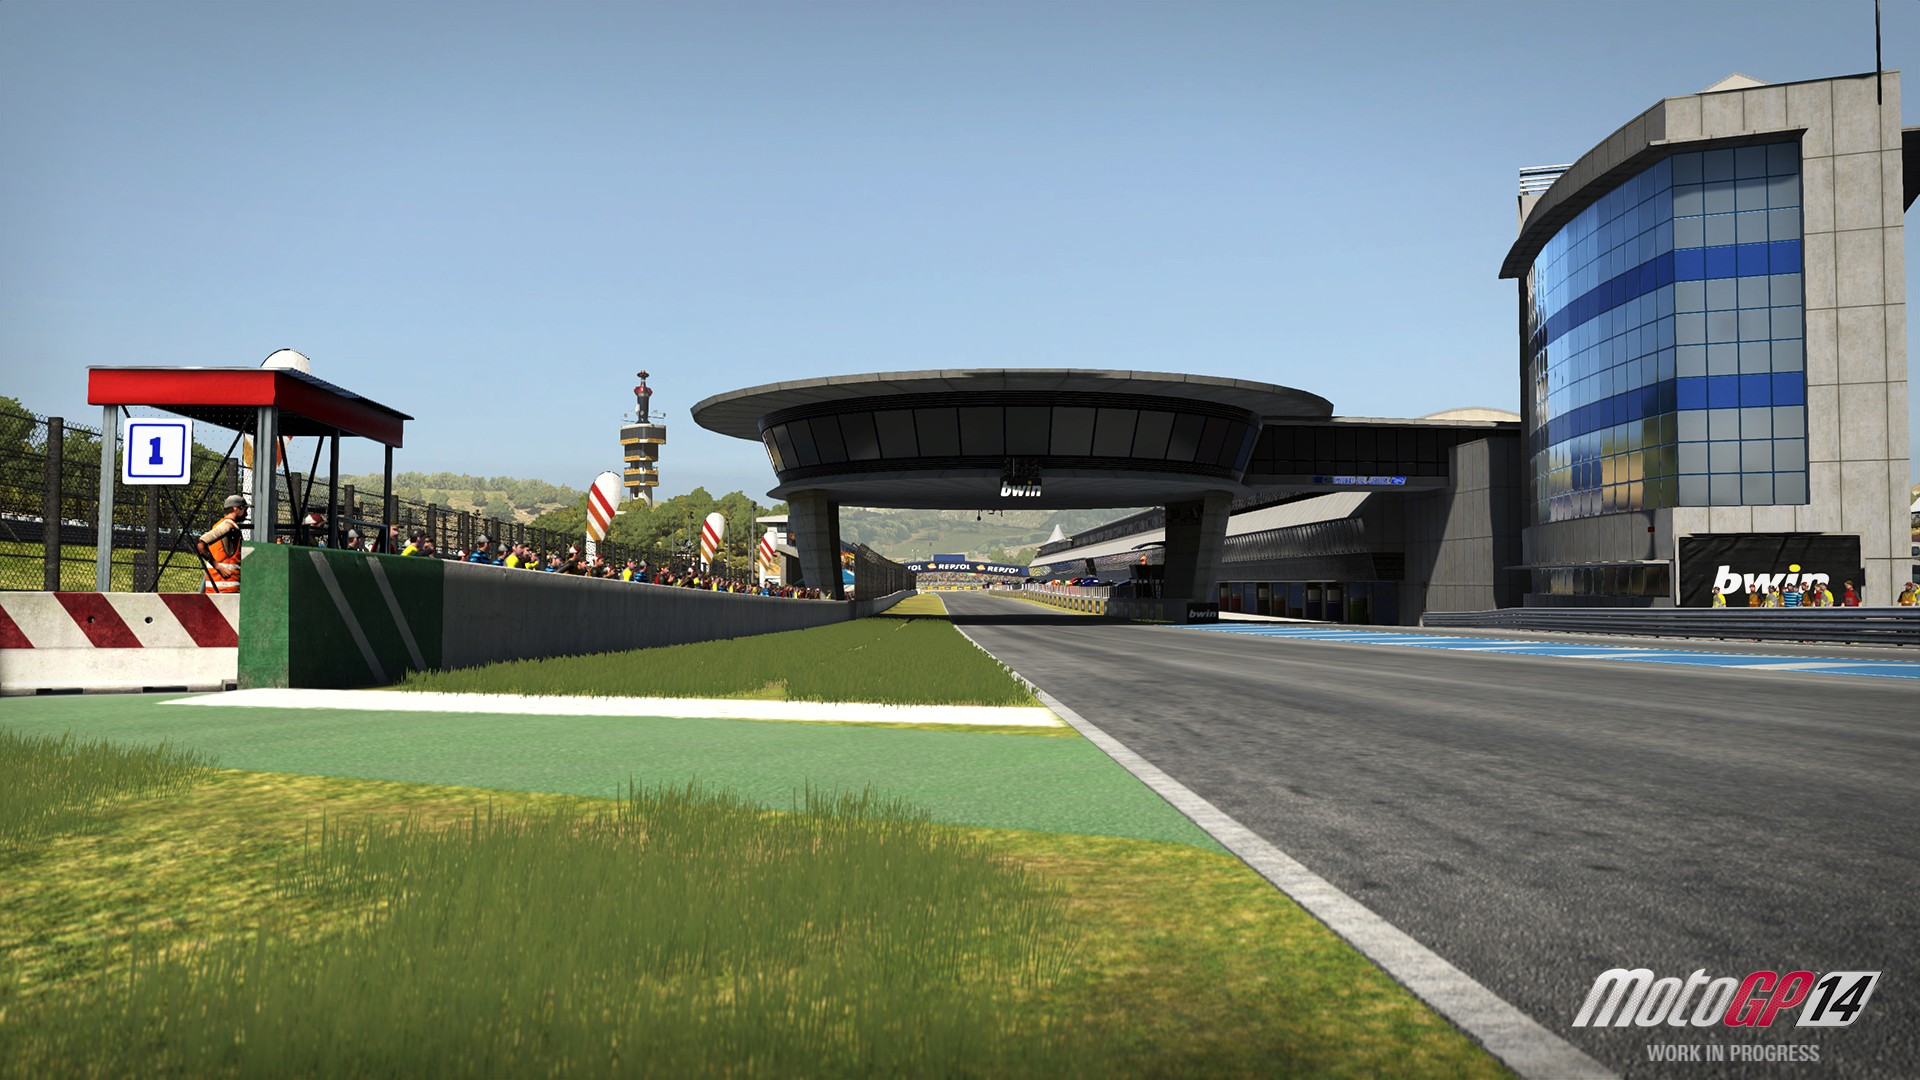 MotoGP 14 on PS4 runs at 1080p/30 FPS, DualShock 4 Touchpad To Change Different Camera Views ...